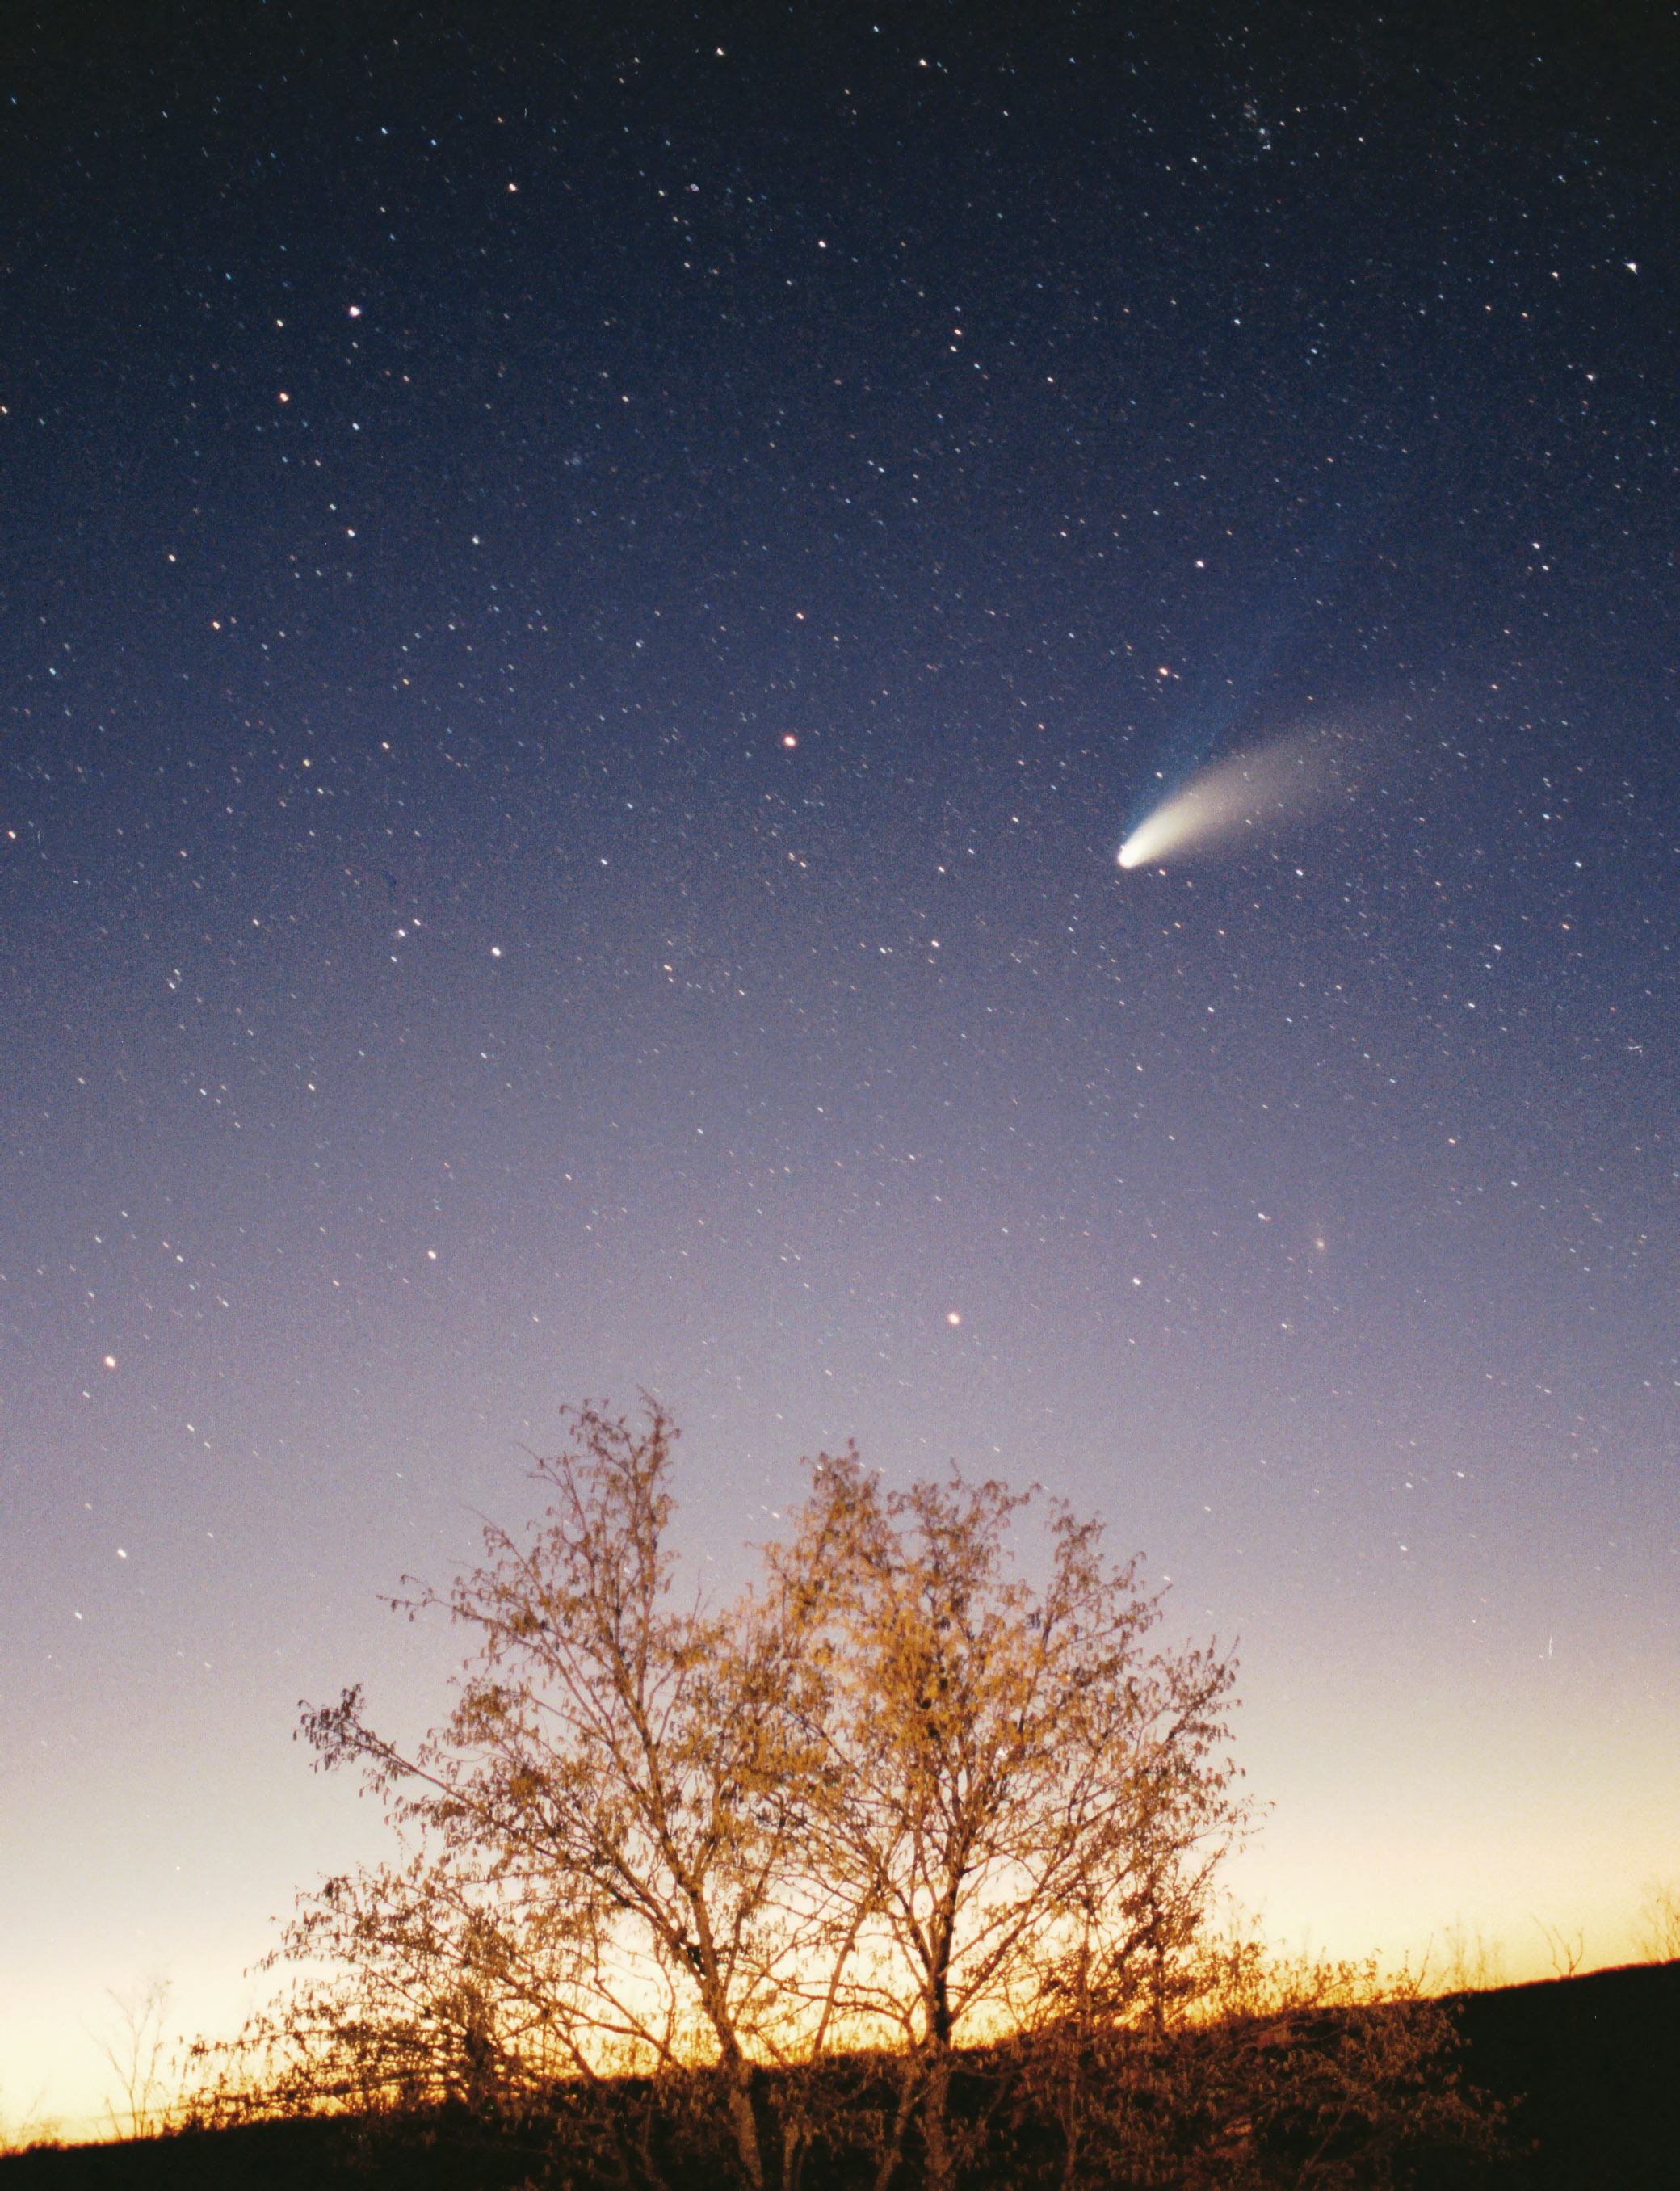 https://i1.wp.com/upload.wikimedia.org/wikipedia/commons/d/df/Comet-Hale-Bopp-29-03-1997_hires_adj.jpg